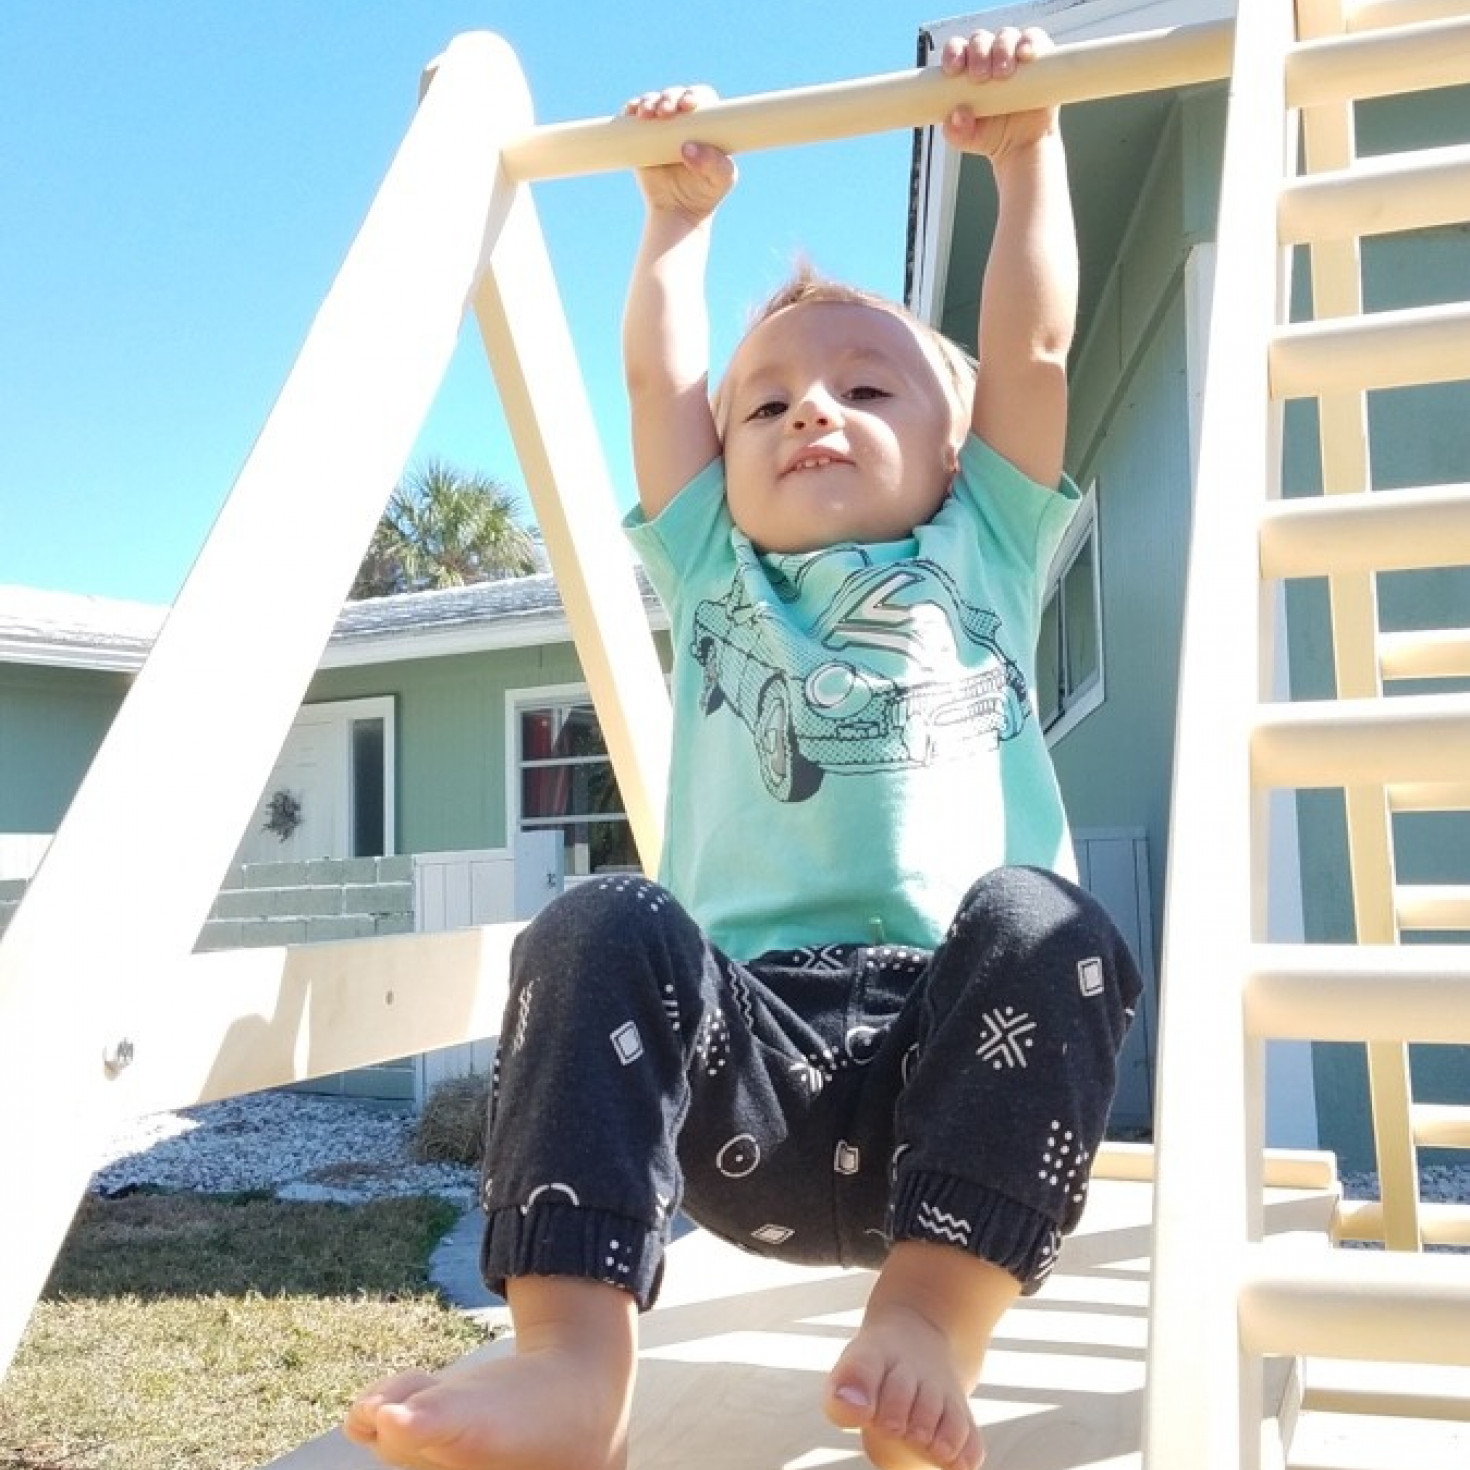 A child hanging on a climbing ladder for toddlers